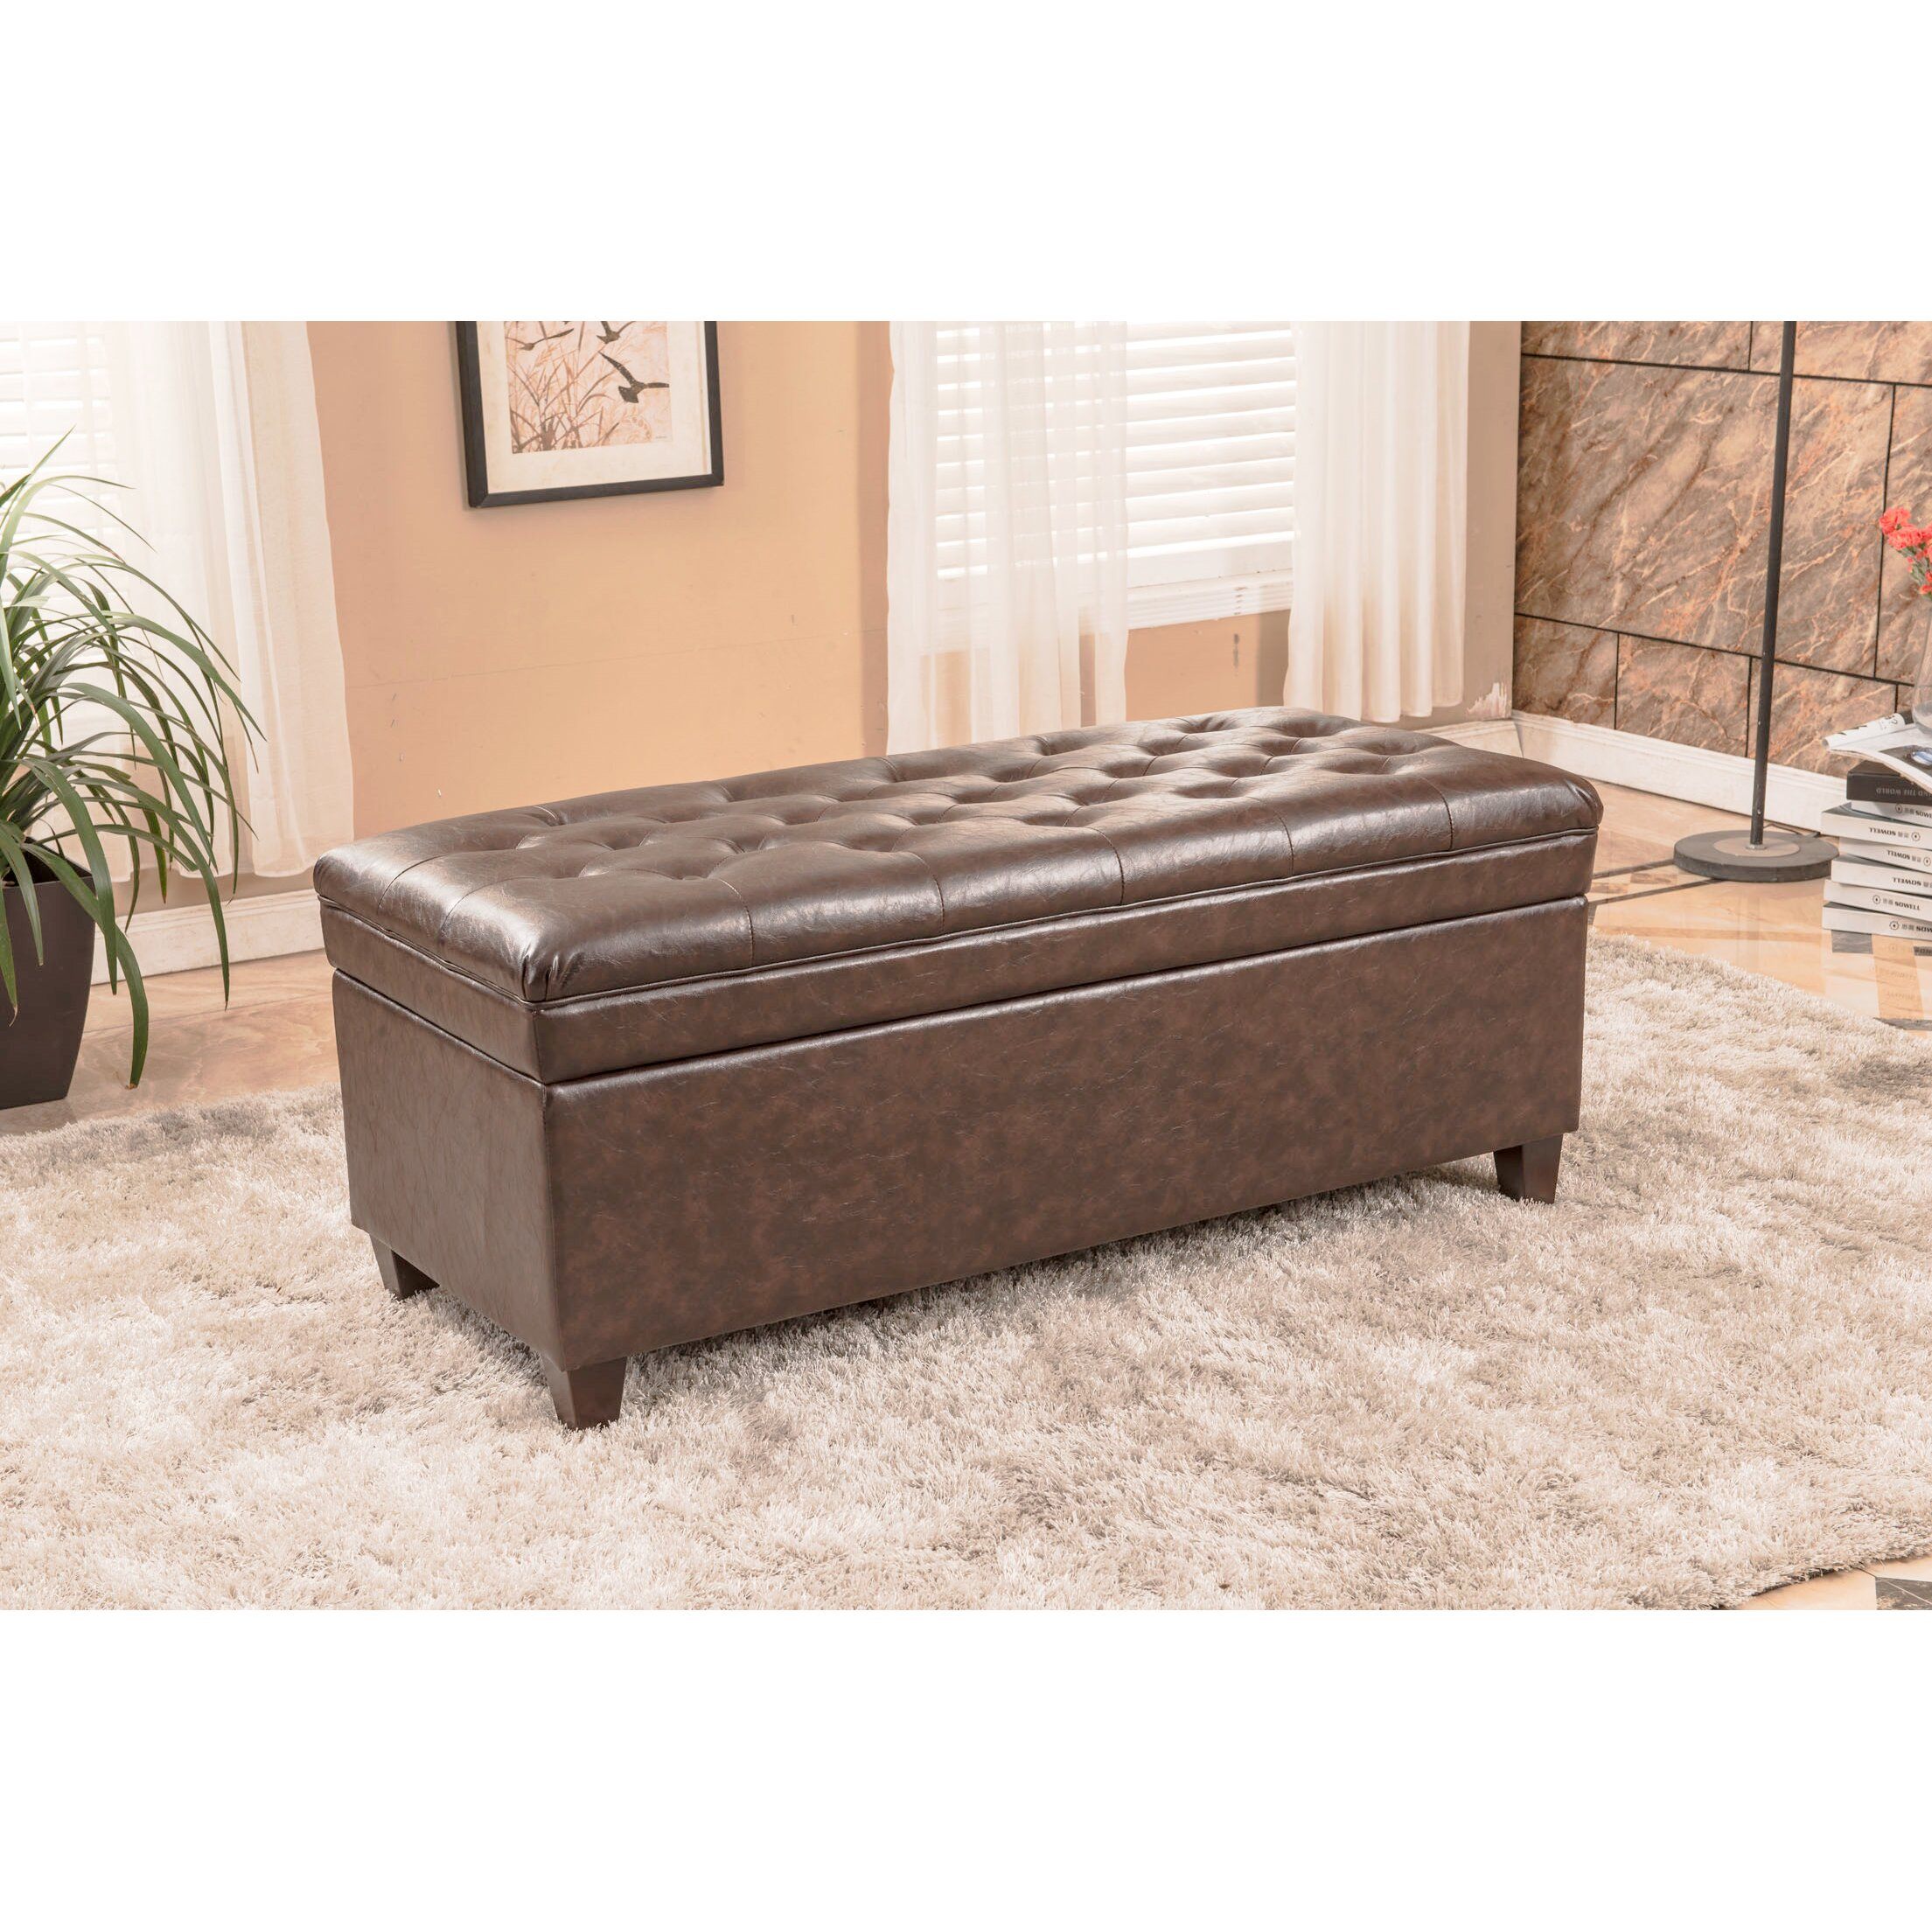 Bedroom bench with storage lift top storage bench for Bedroom upholstered bench